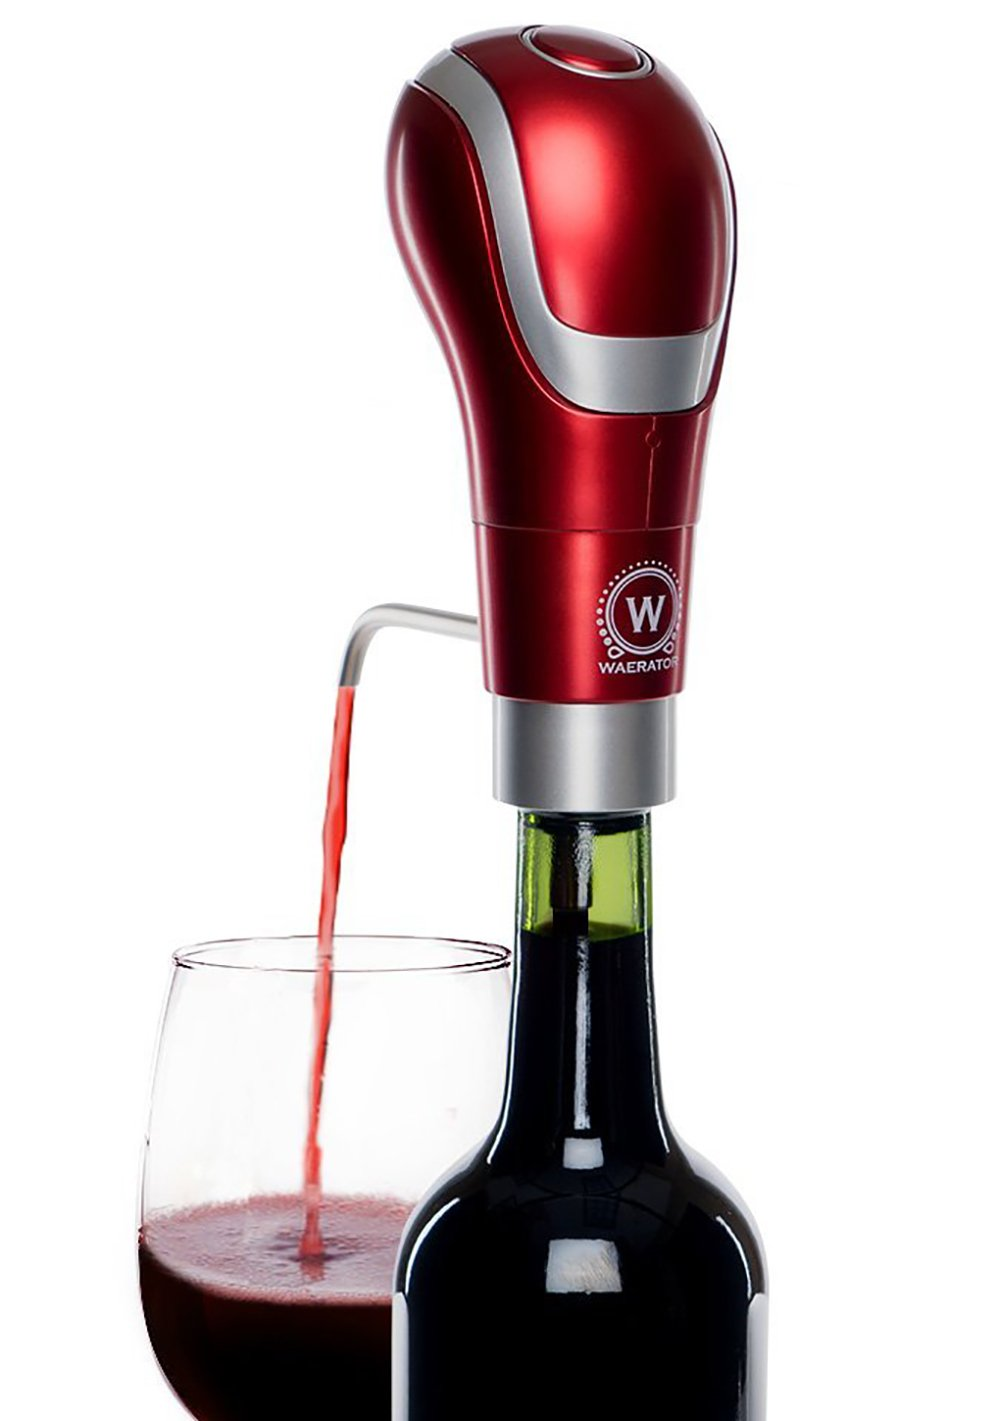 WAERATOR WA-A01-RD Instant 1-Button Electric Wine Aeration and Decanter Pourers, Red